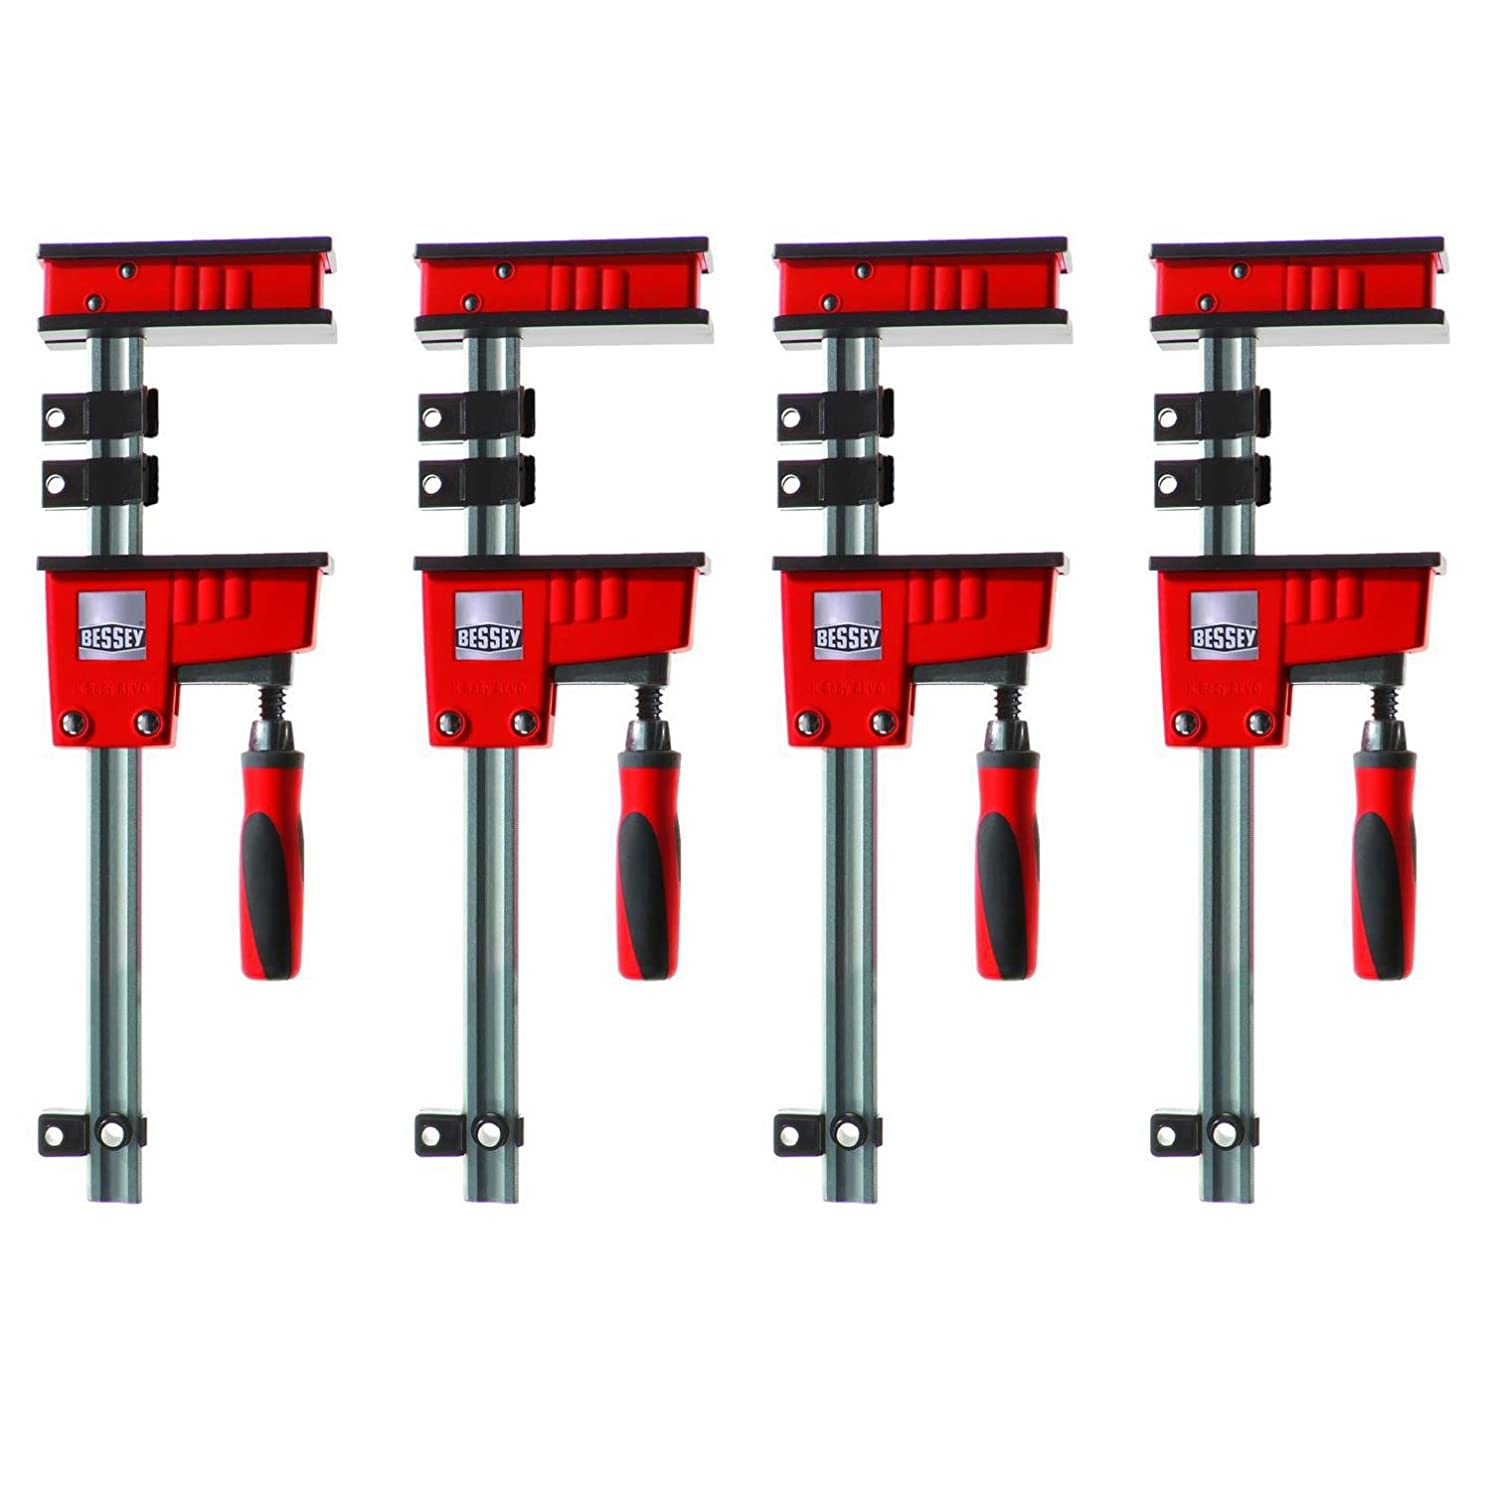 Bessey KR3.518 18-inch K-Body REVO Large Parallel Clamps with Handle, 4-Pack